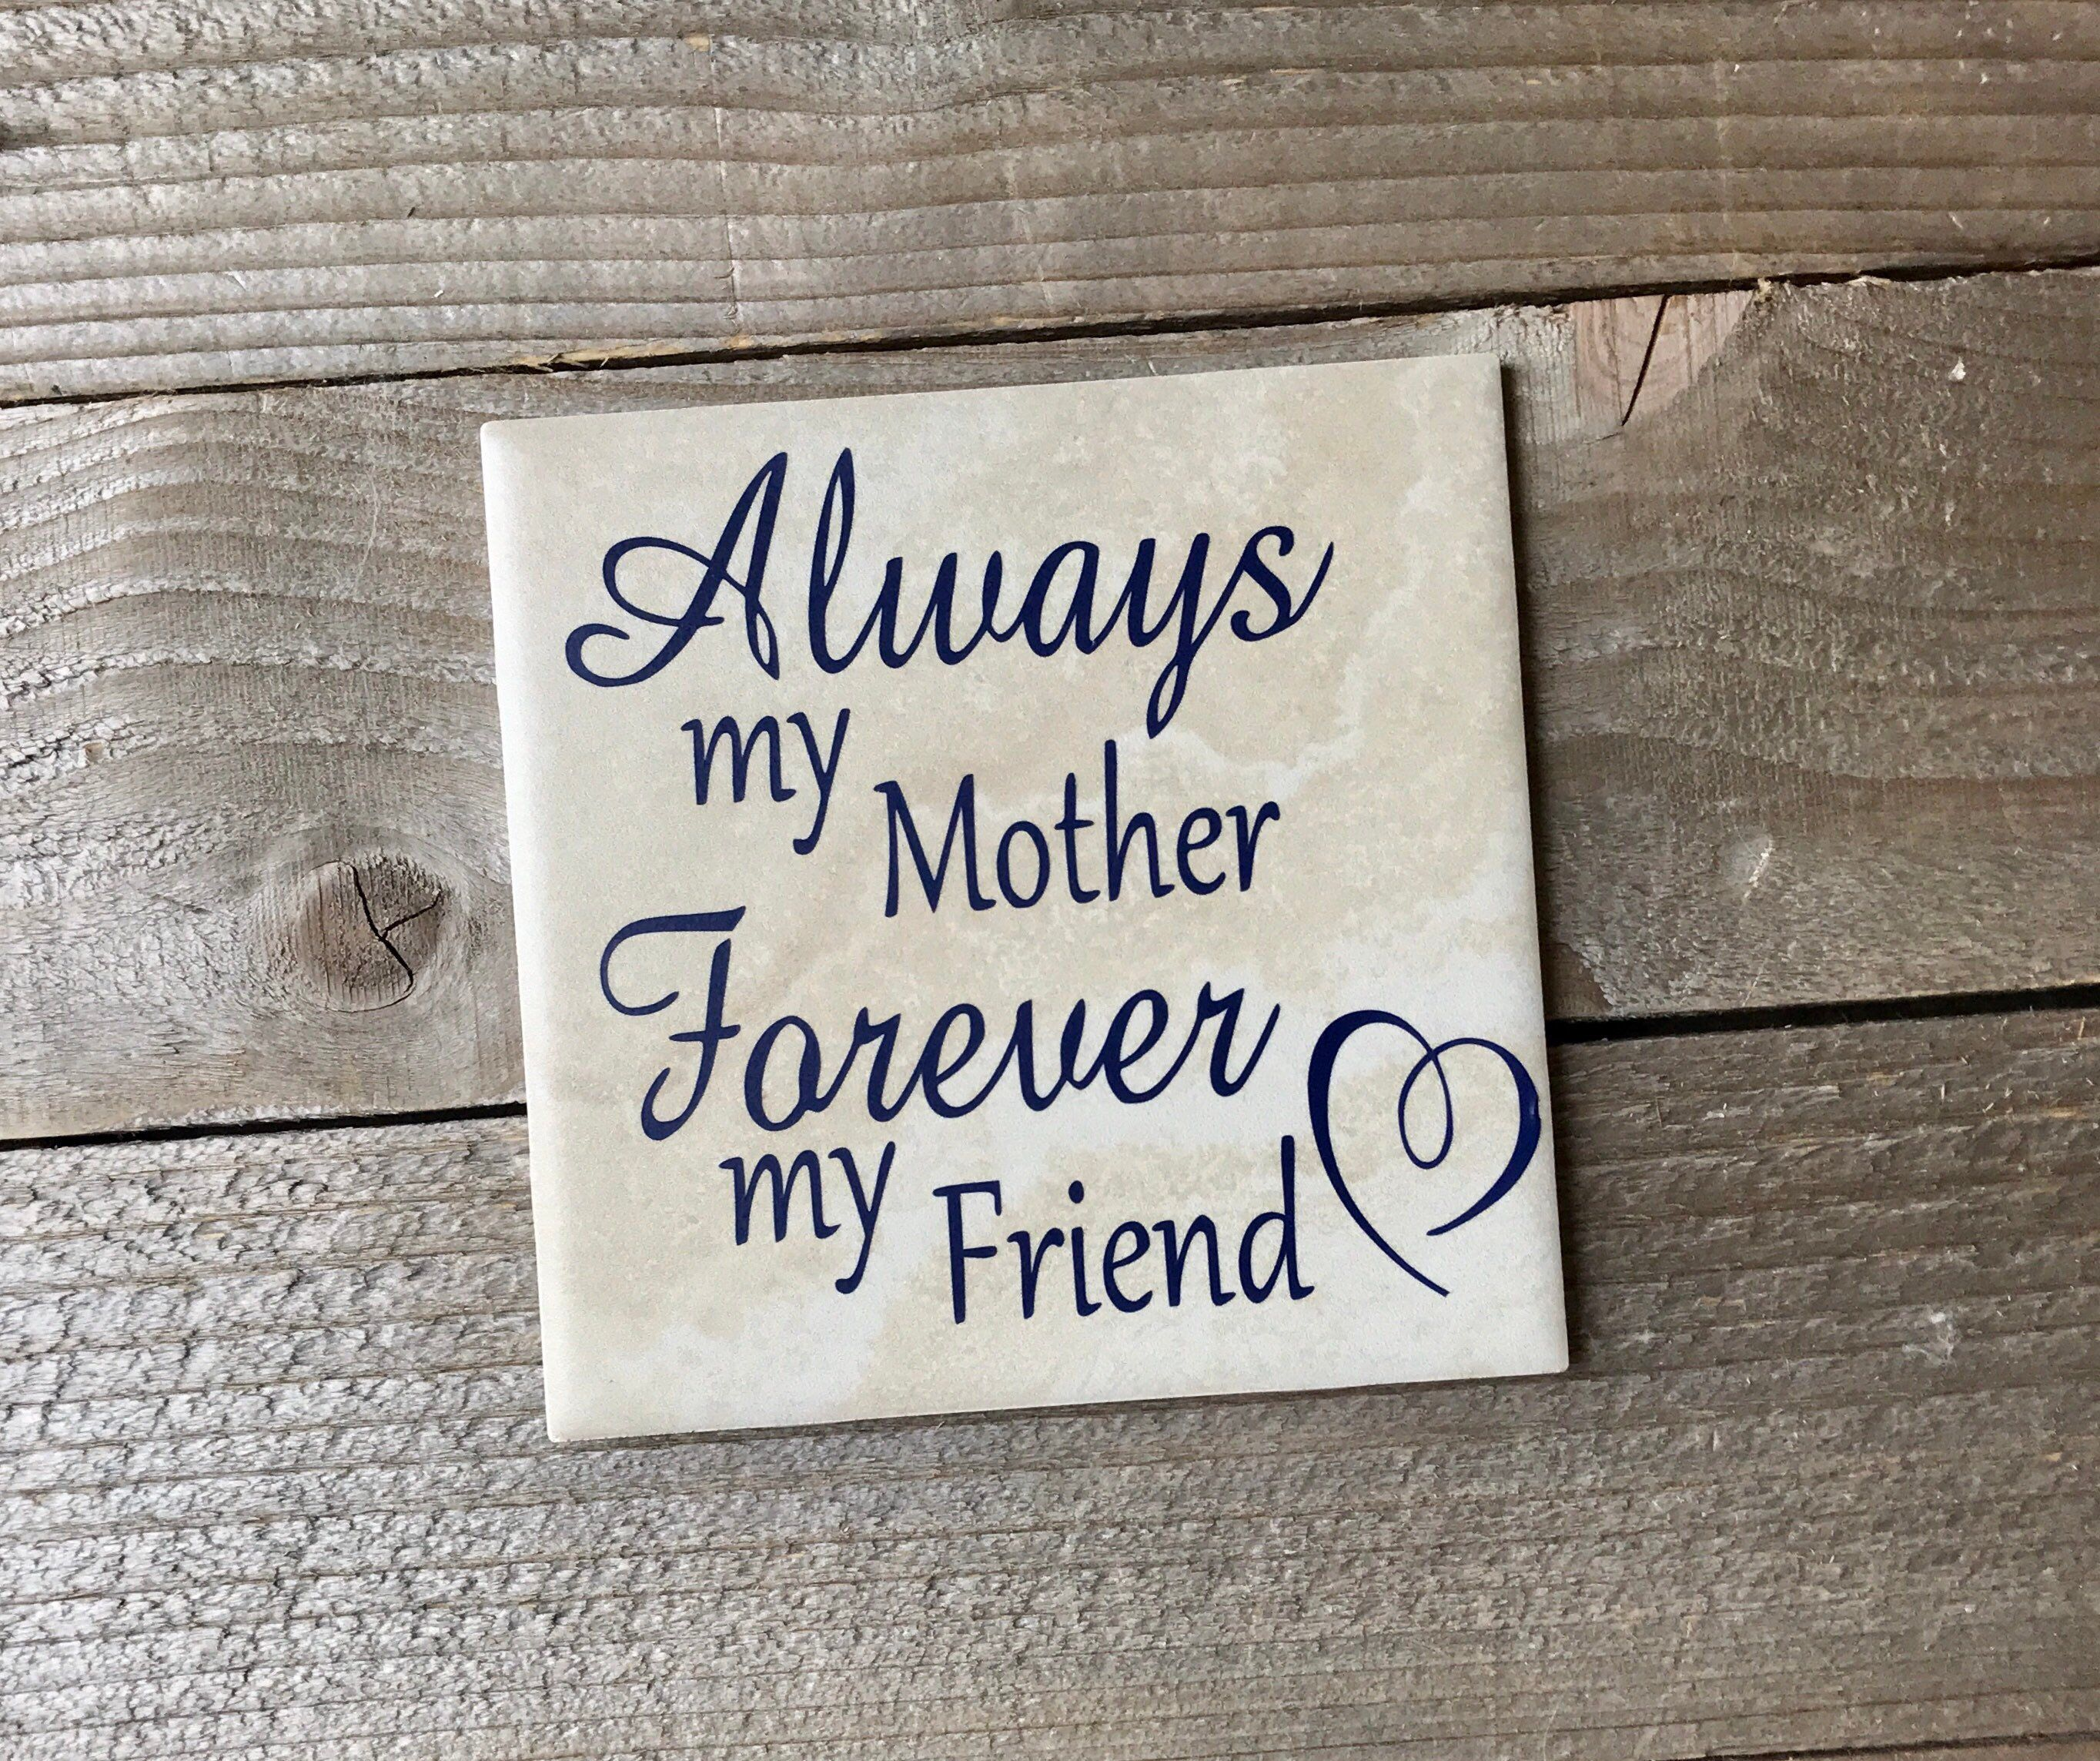 Mom birthday gift mothers day gift personalized gift